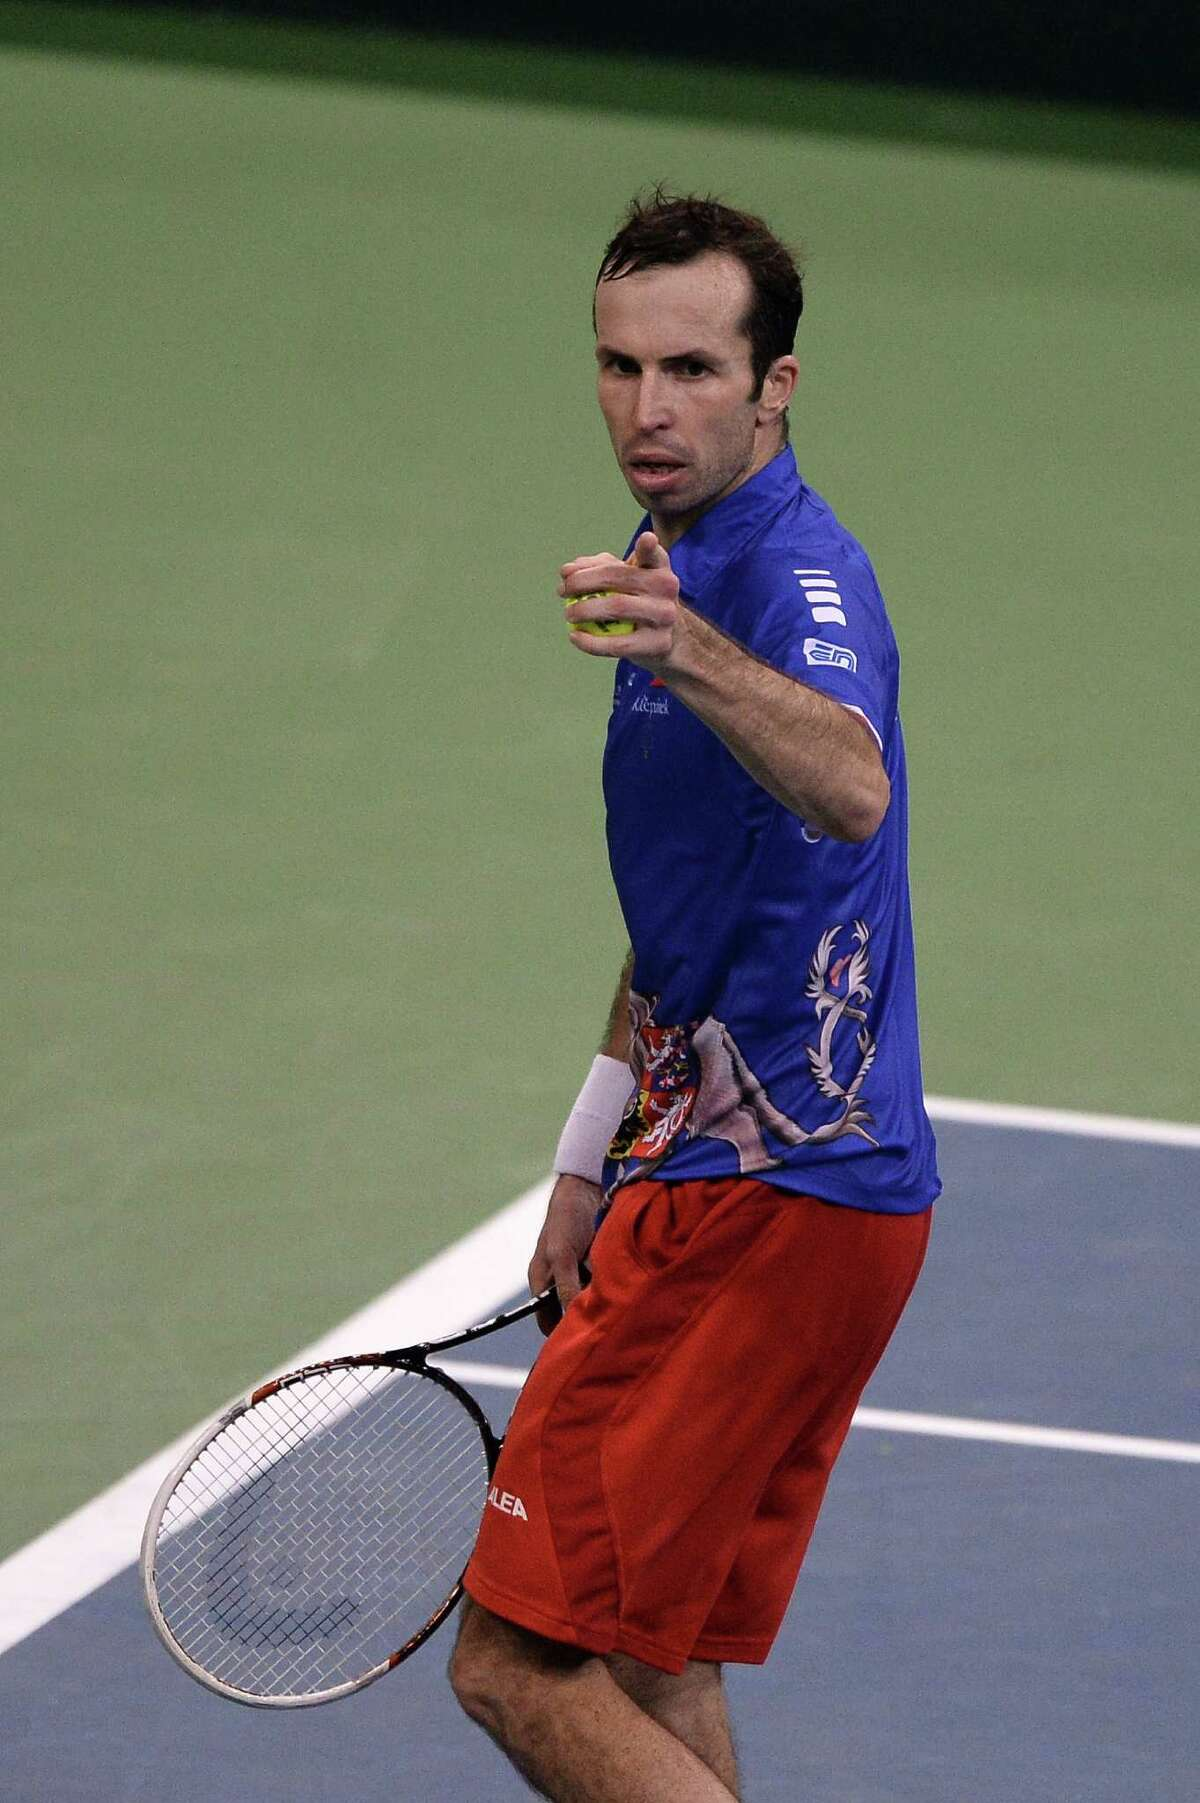 Czech Rebublic's Radek Stepanek jubilates after winning against Serbia's Dusan Lajovic during the Davis Cup final between Serbia and the Czech Republic at the Kombank Arena in Belgrade on November 17, 2013. The Czech Republic defended the Davis Cup title after Radek Stepanek beat Serbian youngster Dusan Lajovic in the decisive fifth final rubber in straight sets on November 17, 2013. AFP PHOTO / DIMITAR DILKOFFDIMITAR DILKOFF/AFP/Getty Images ORG XMIT: -